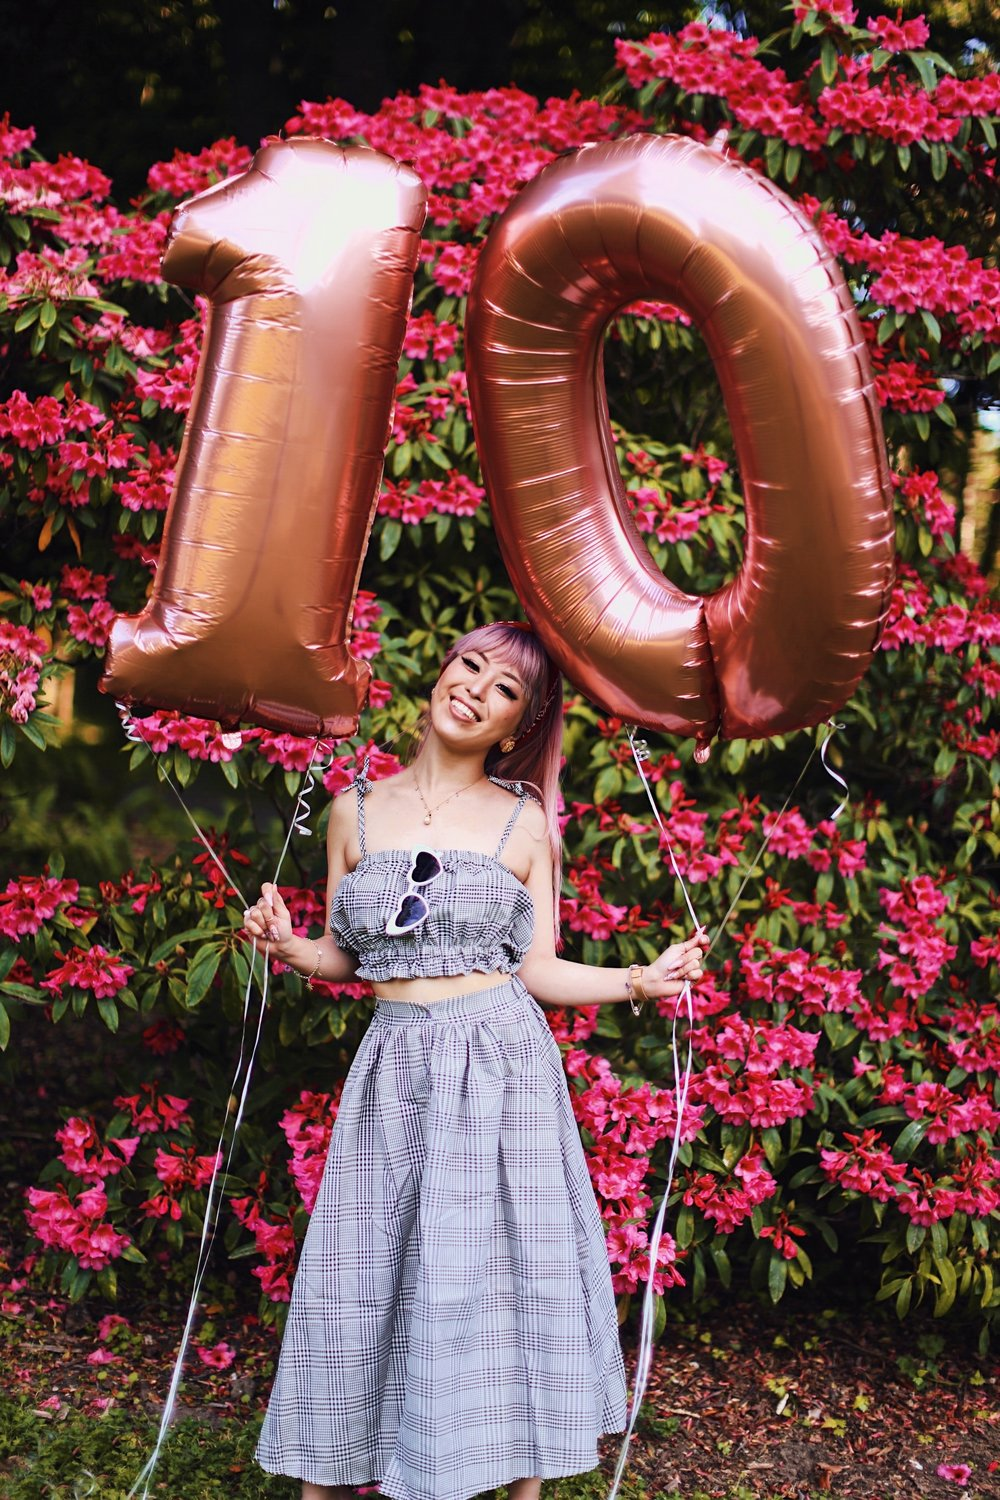 Aika's Love Closet-Seattle Style Life Style Blogger-Japanese-10 Year Anniversary-living in America-what I've learned from Living Abroad-life lessons-pink hair-zero uv heart sunglasses-rose gold balloons-smile 18